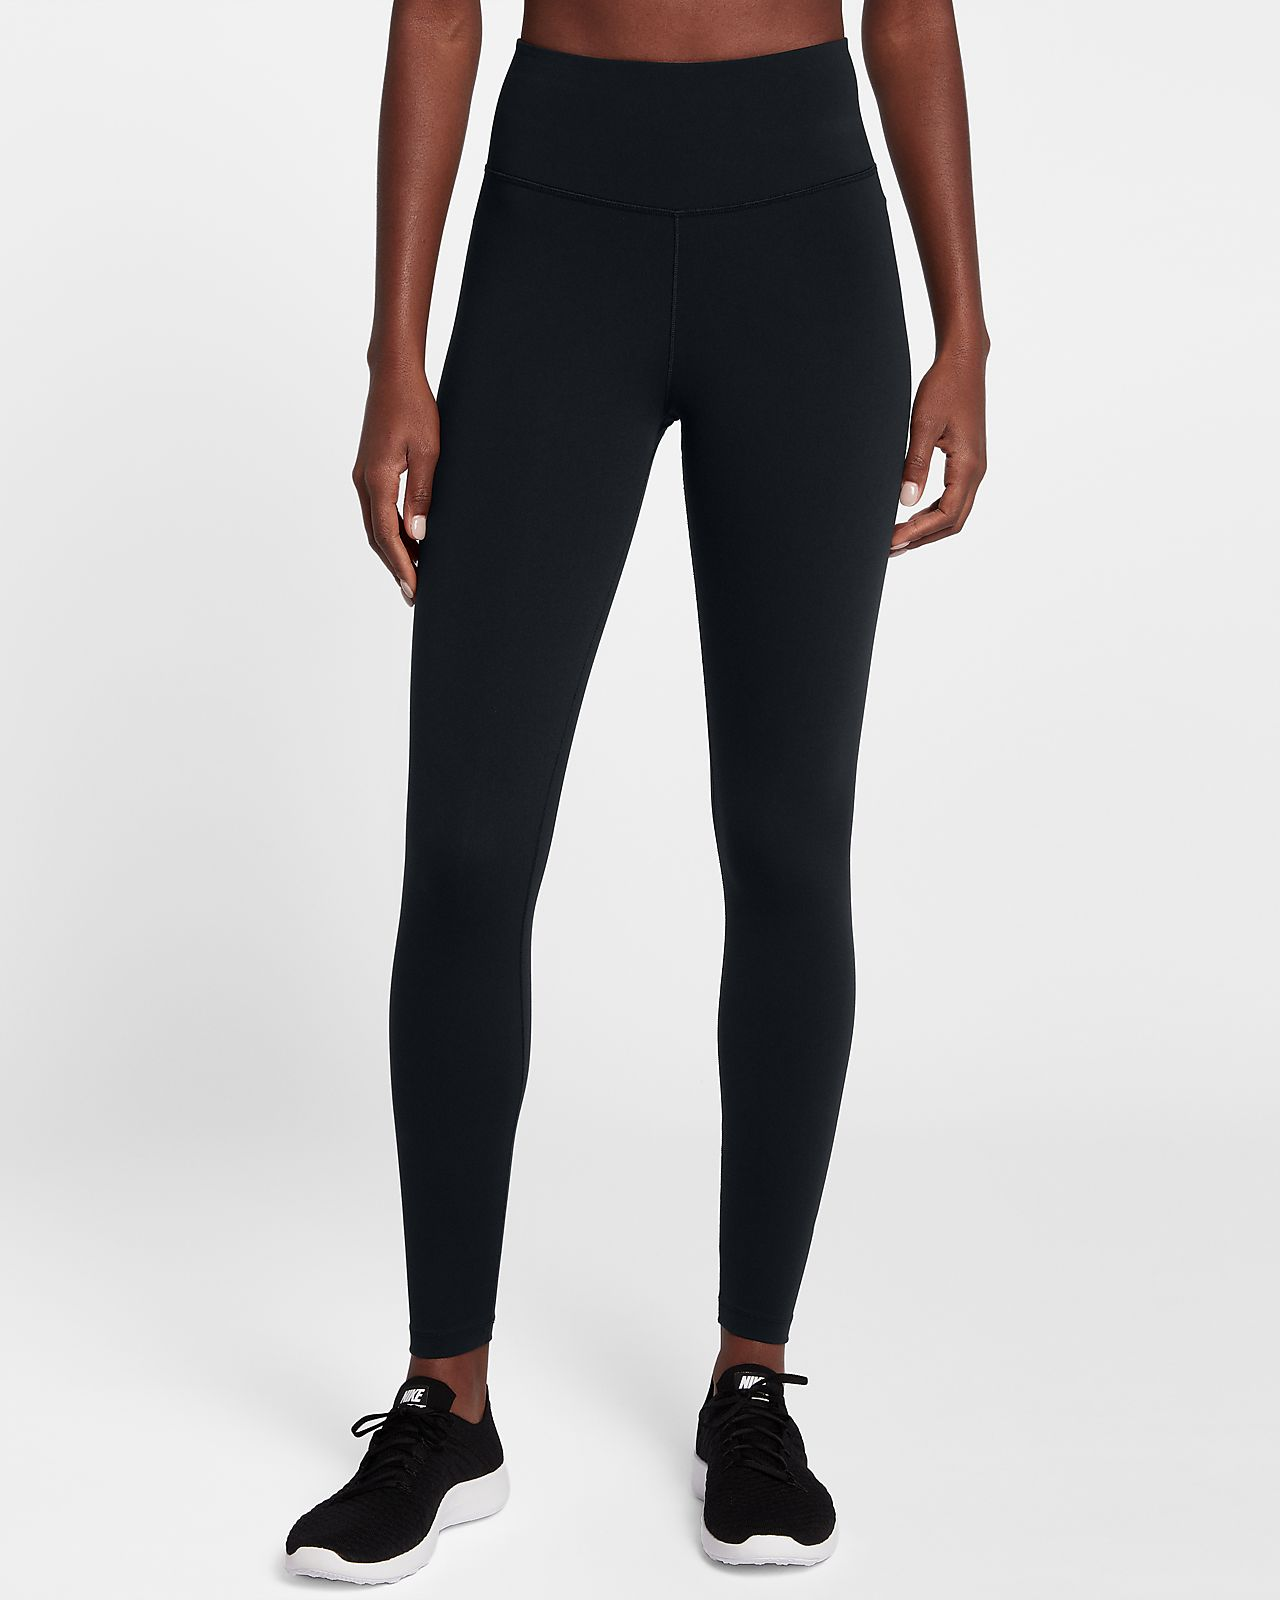 best loved 095dd aecbb ... Tight de training taille haute Nike Sculpt Lux pour Femme